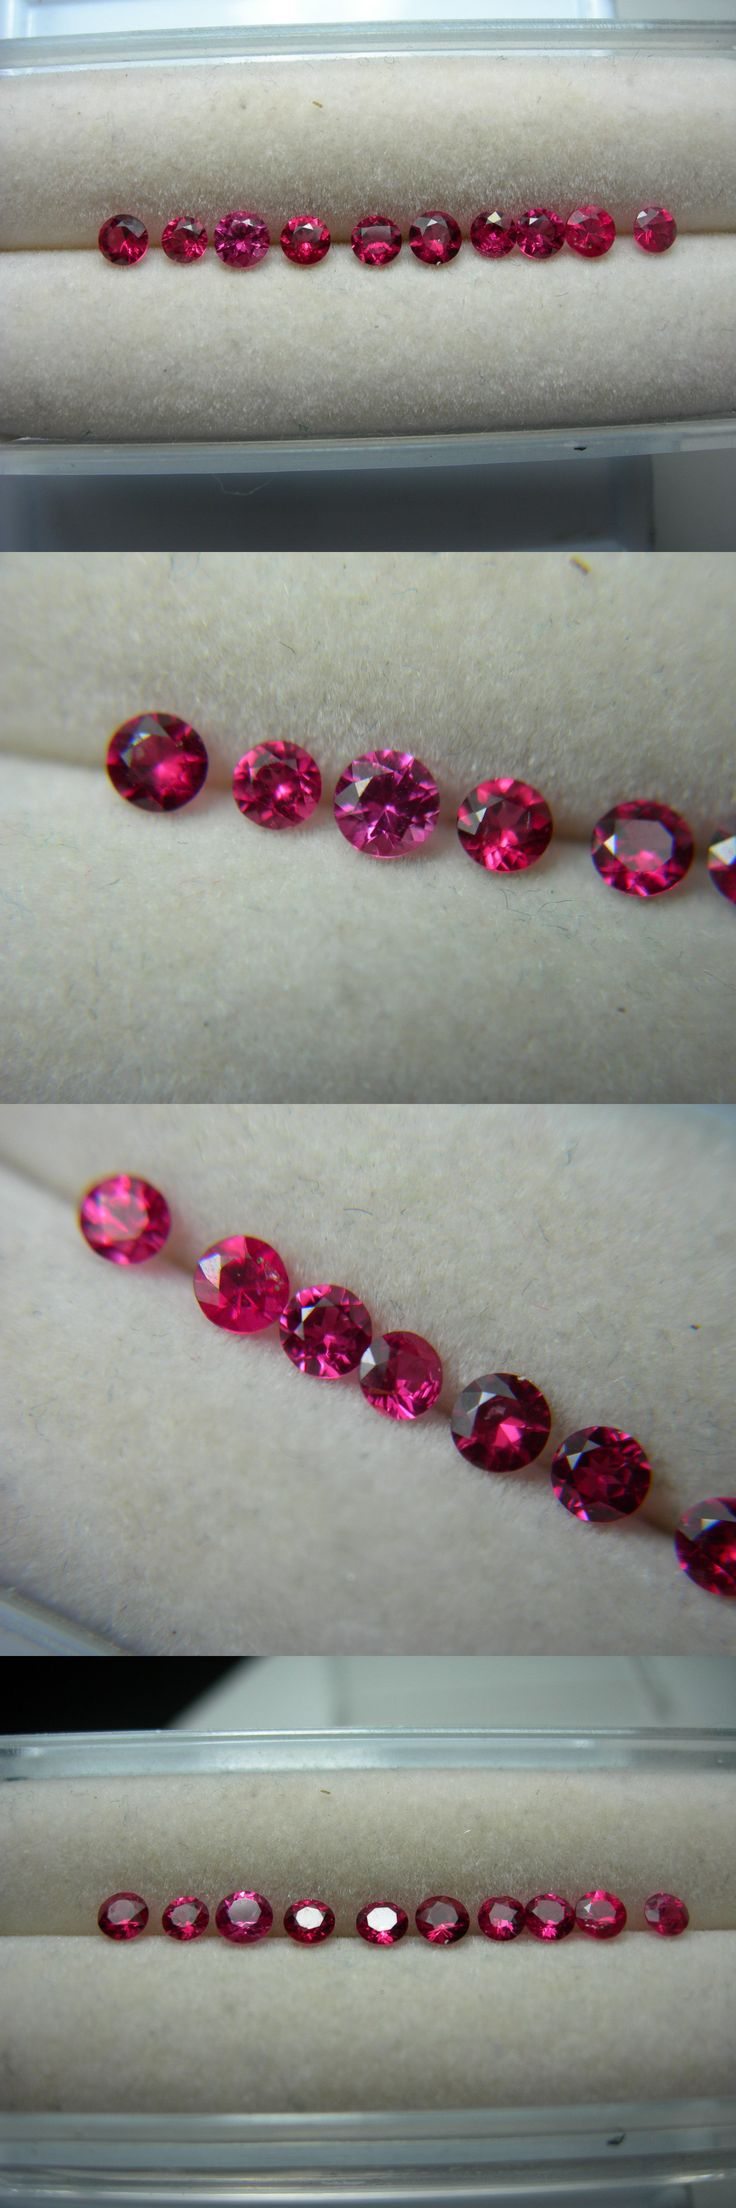 Spinel 110873: 10 Very Rare Fine Red Spinel Gems Mogok Burma Natural Diamond Cut Fluorescent -> BUY IT NOW ONLY: $160.49 on eBay!